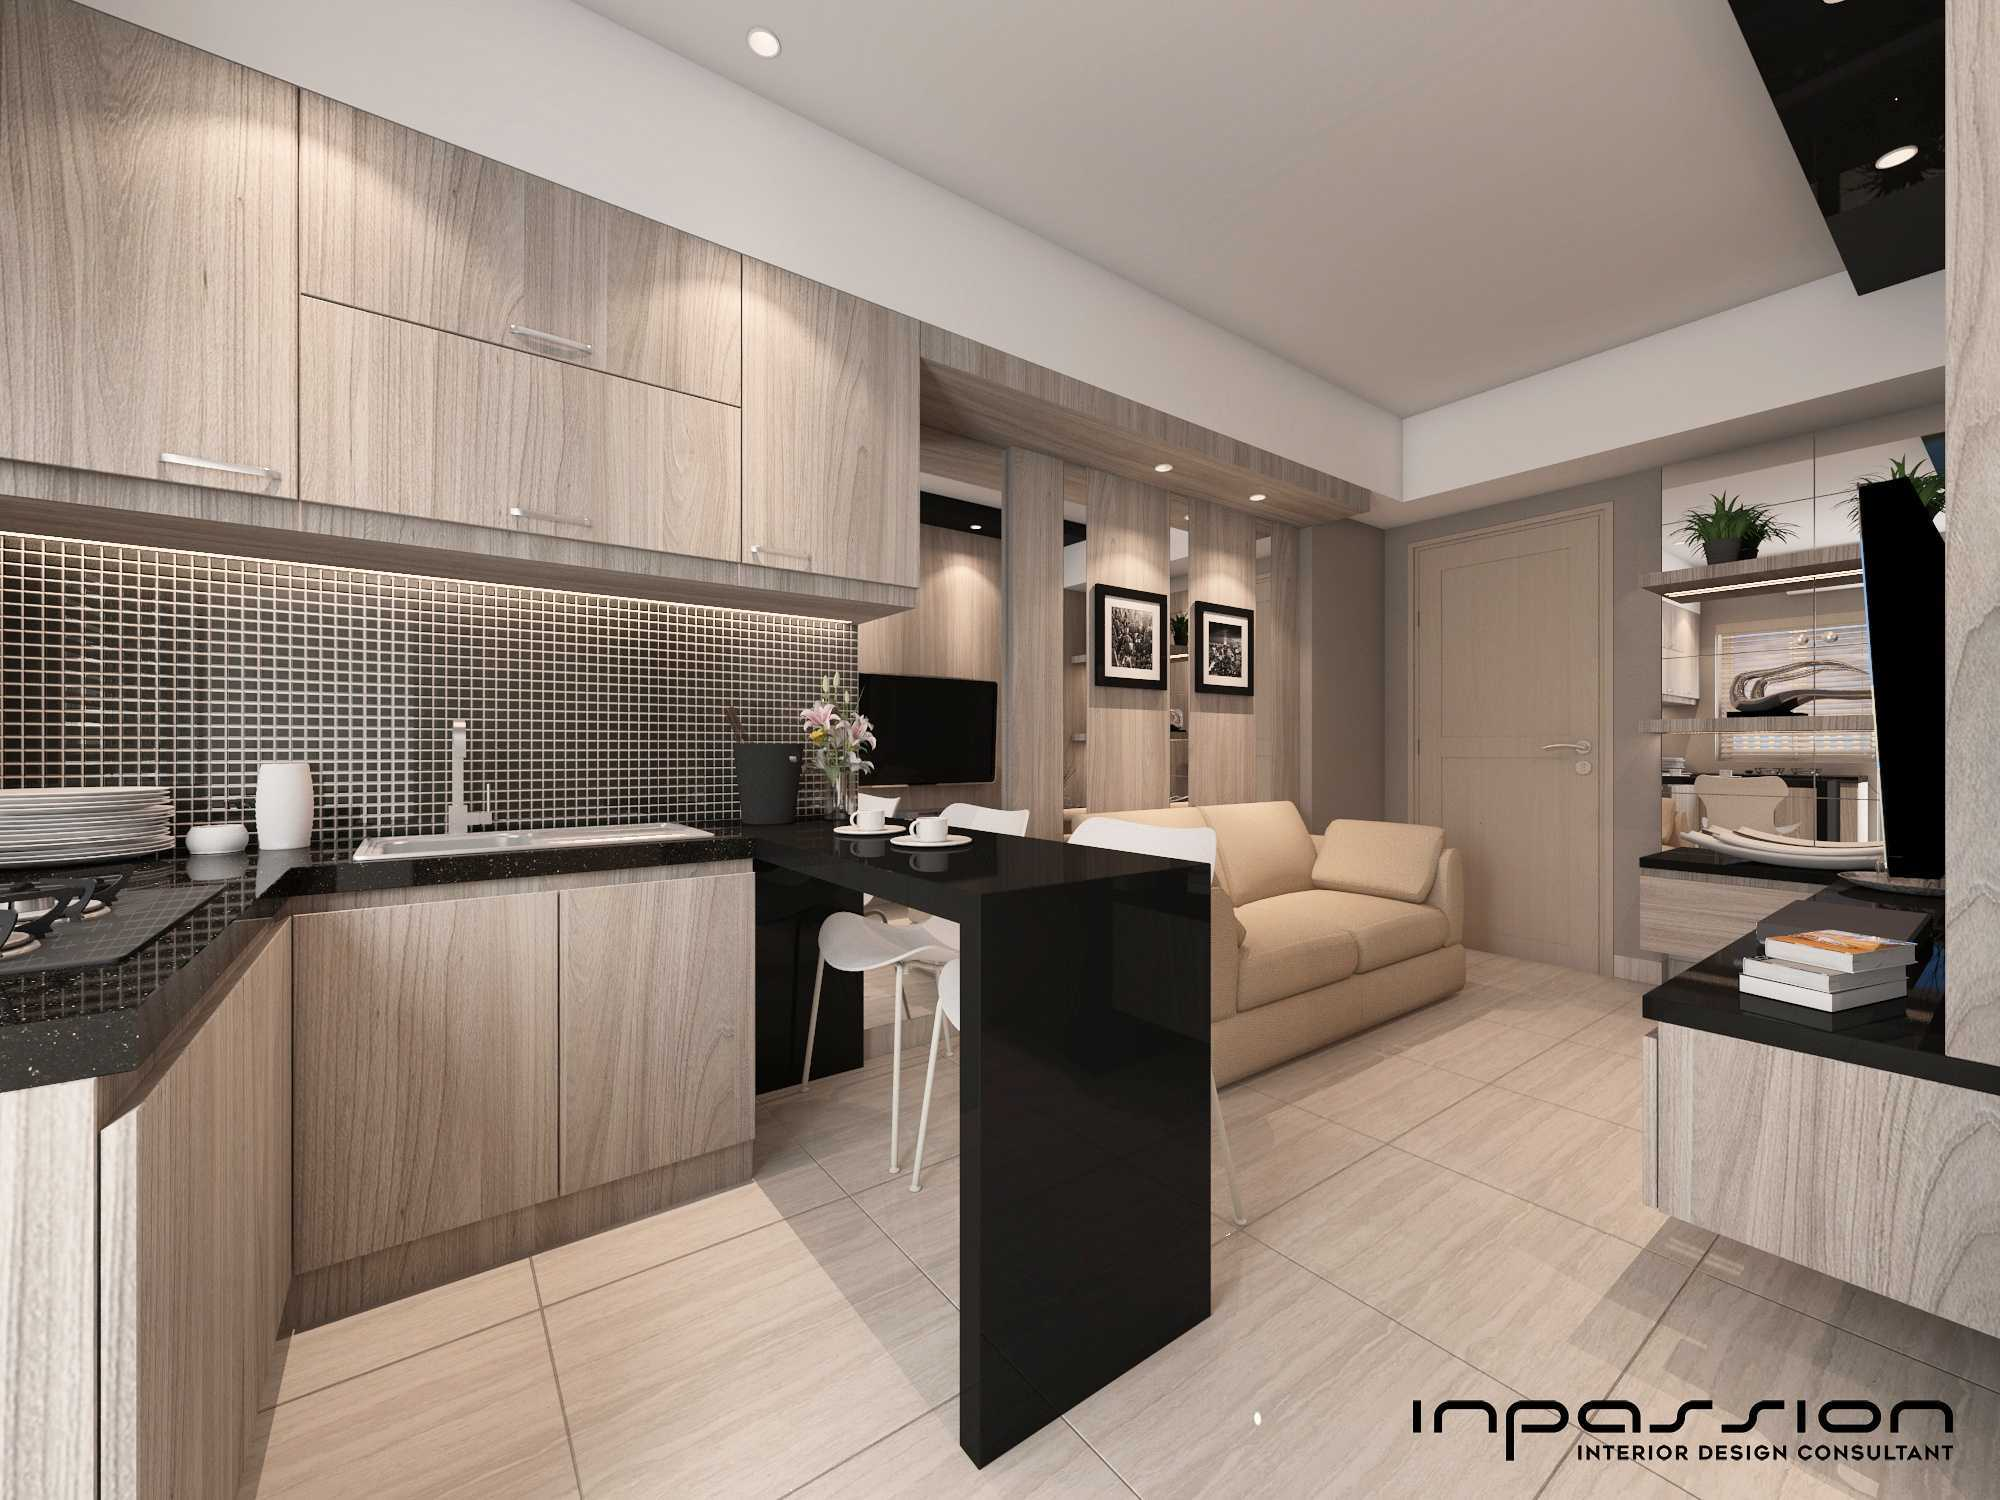 Inpassion Interior Design Educity Apartemen 3 Bedroom Surabaya City, East Java, Indonesia Surabaya City, East Java, Indonesia Img20170430155940502 Kontemporer  31361